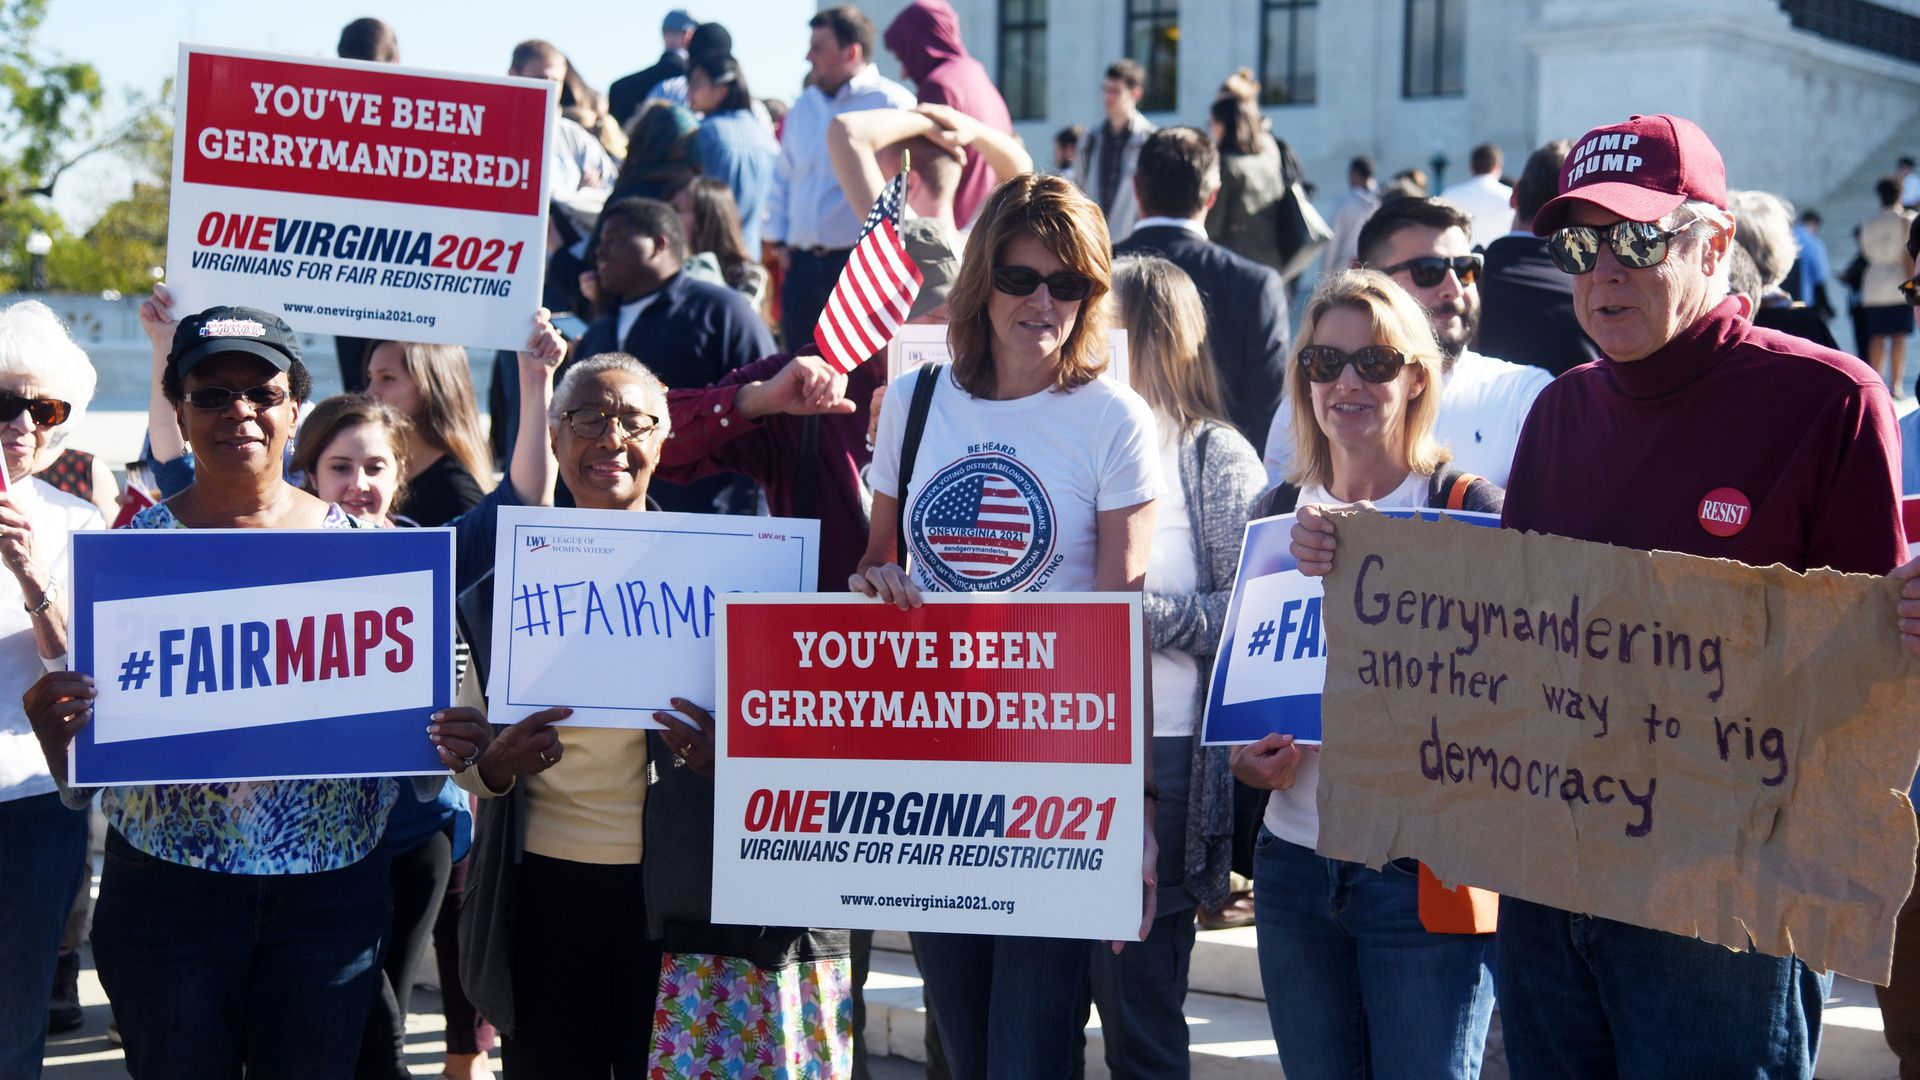 Demonstrators at a rally speaking out against gerrymandering  Photo: Olivier Douliery/Getty Images